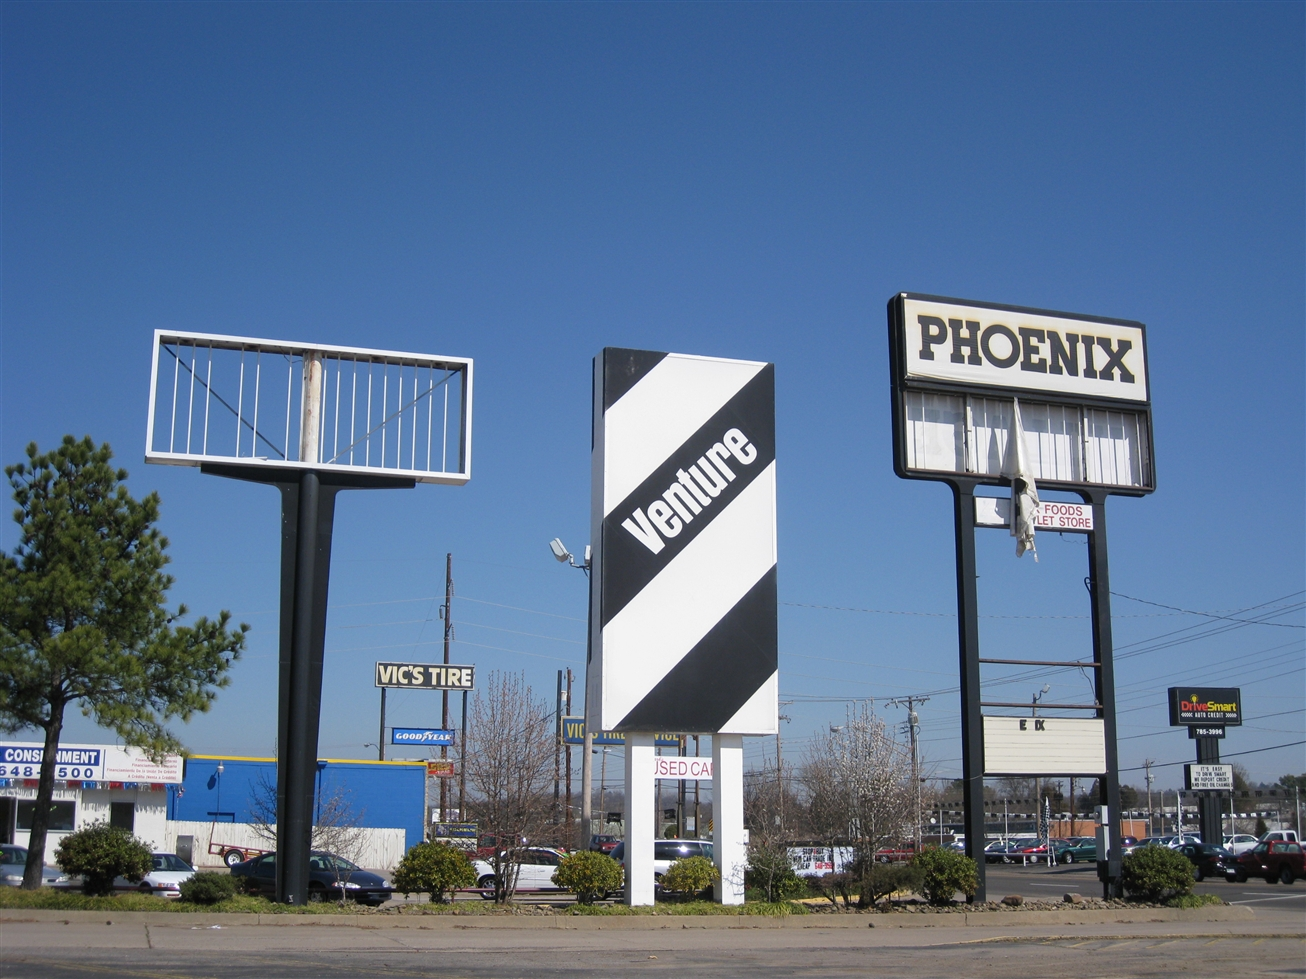 Phoenix Village Mall Venture in Fort Smith, Arkansas